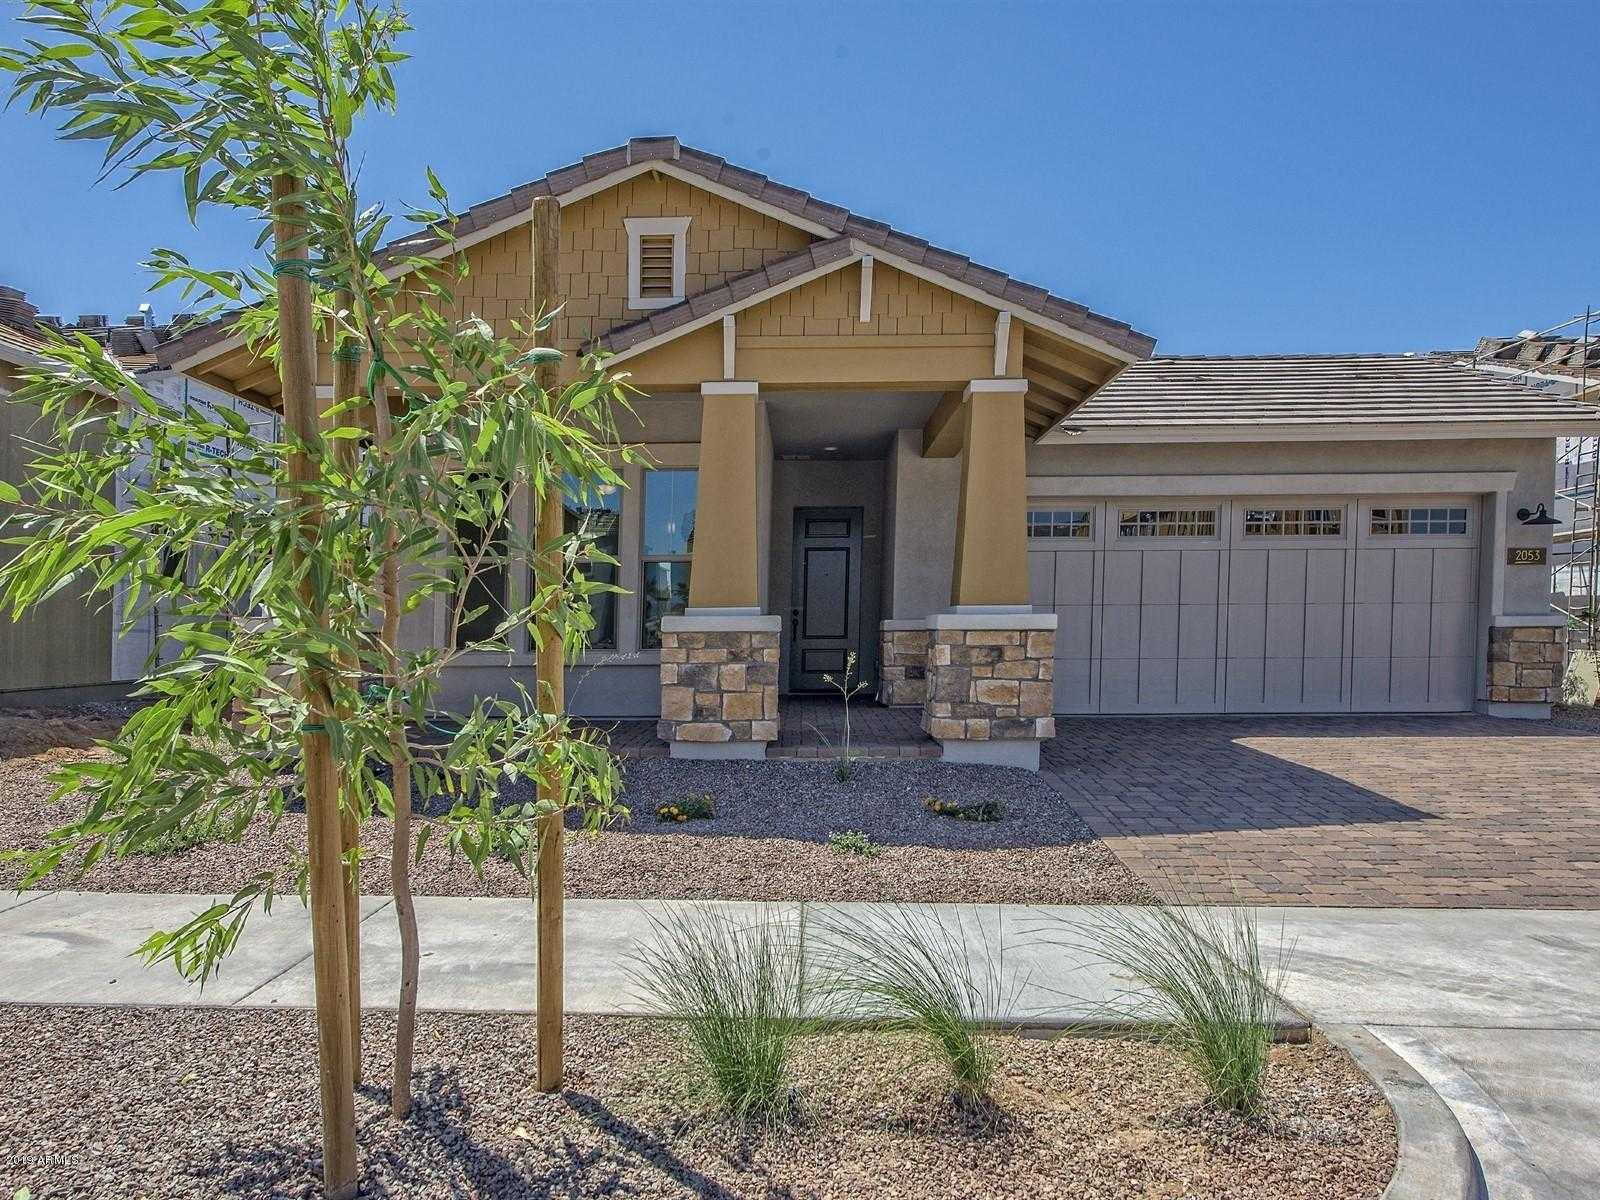 $546,748 - 4Br/3Ba - Home for Sale in Norterra Pud Phase 1, Phoenix